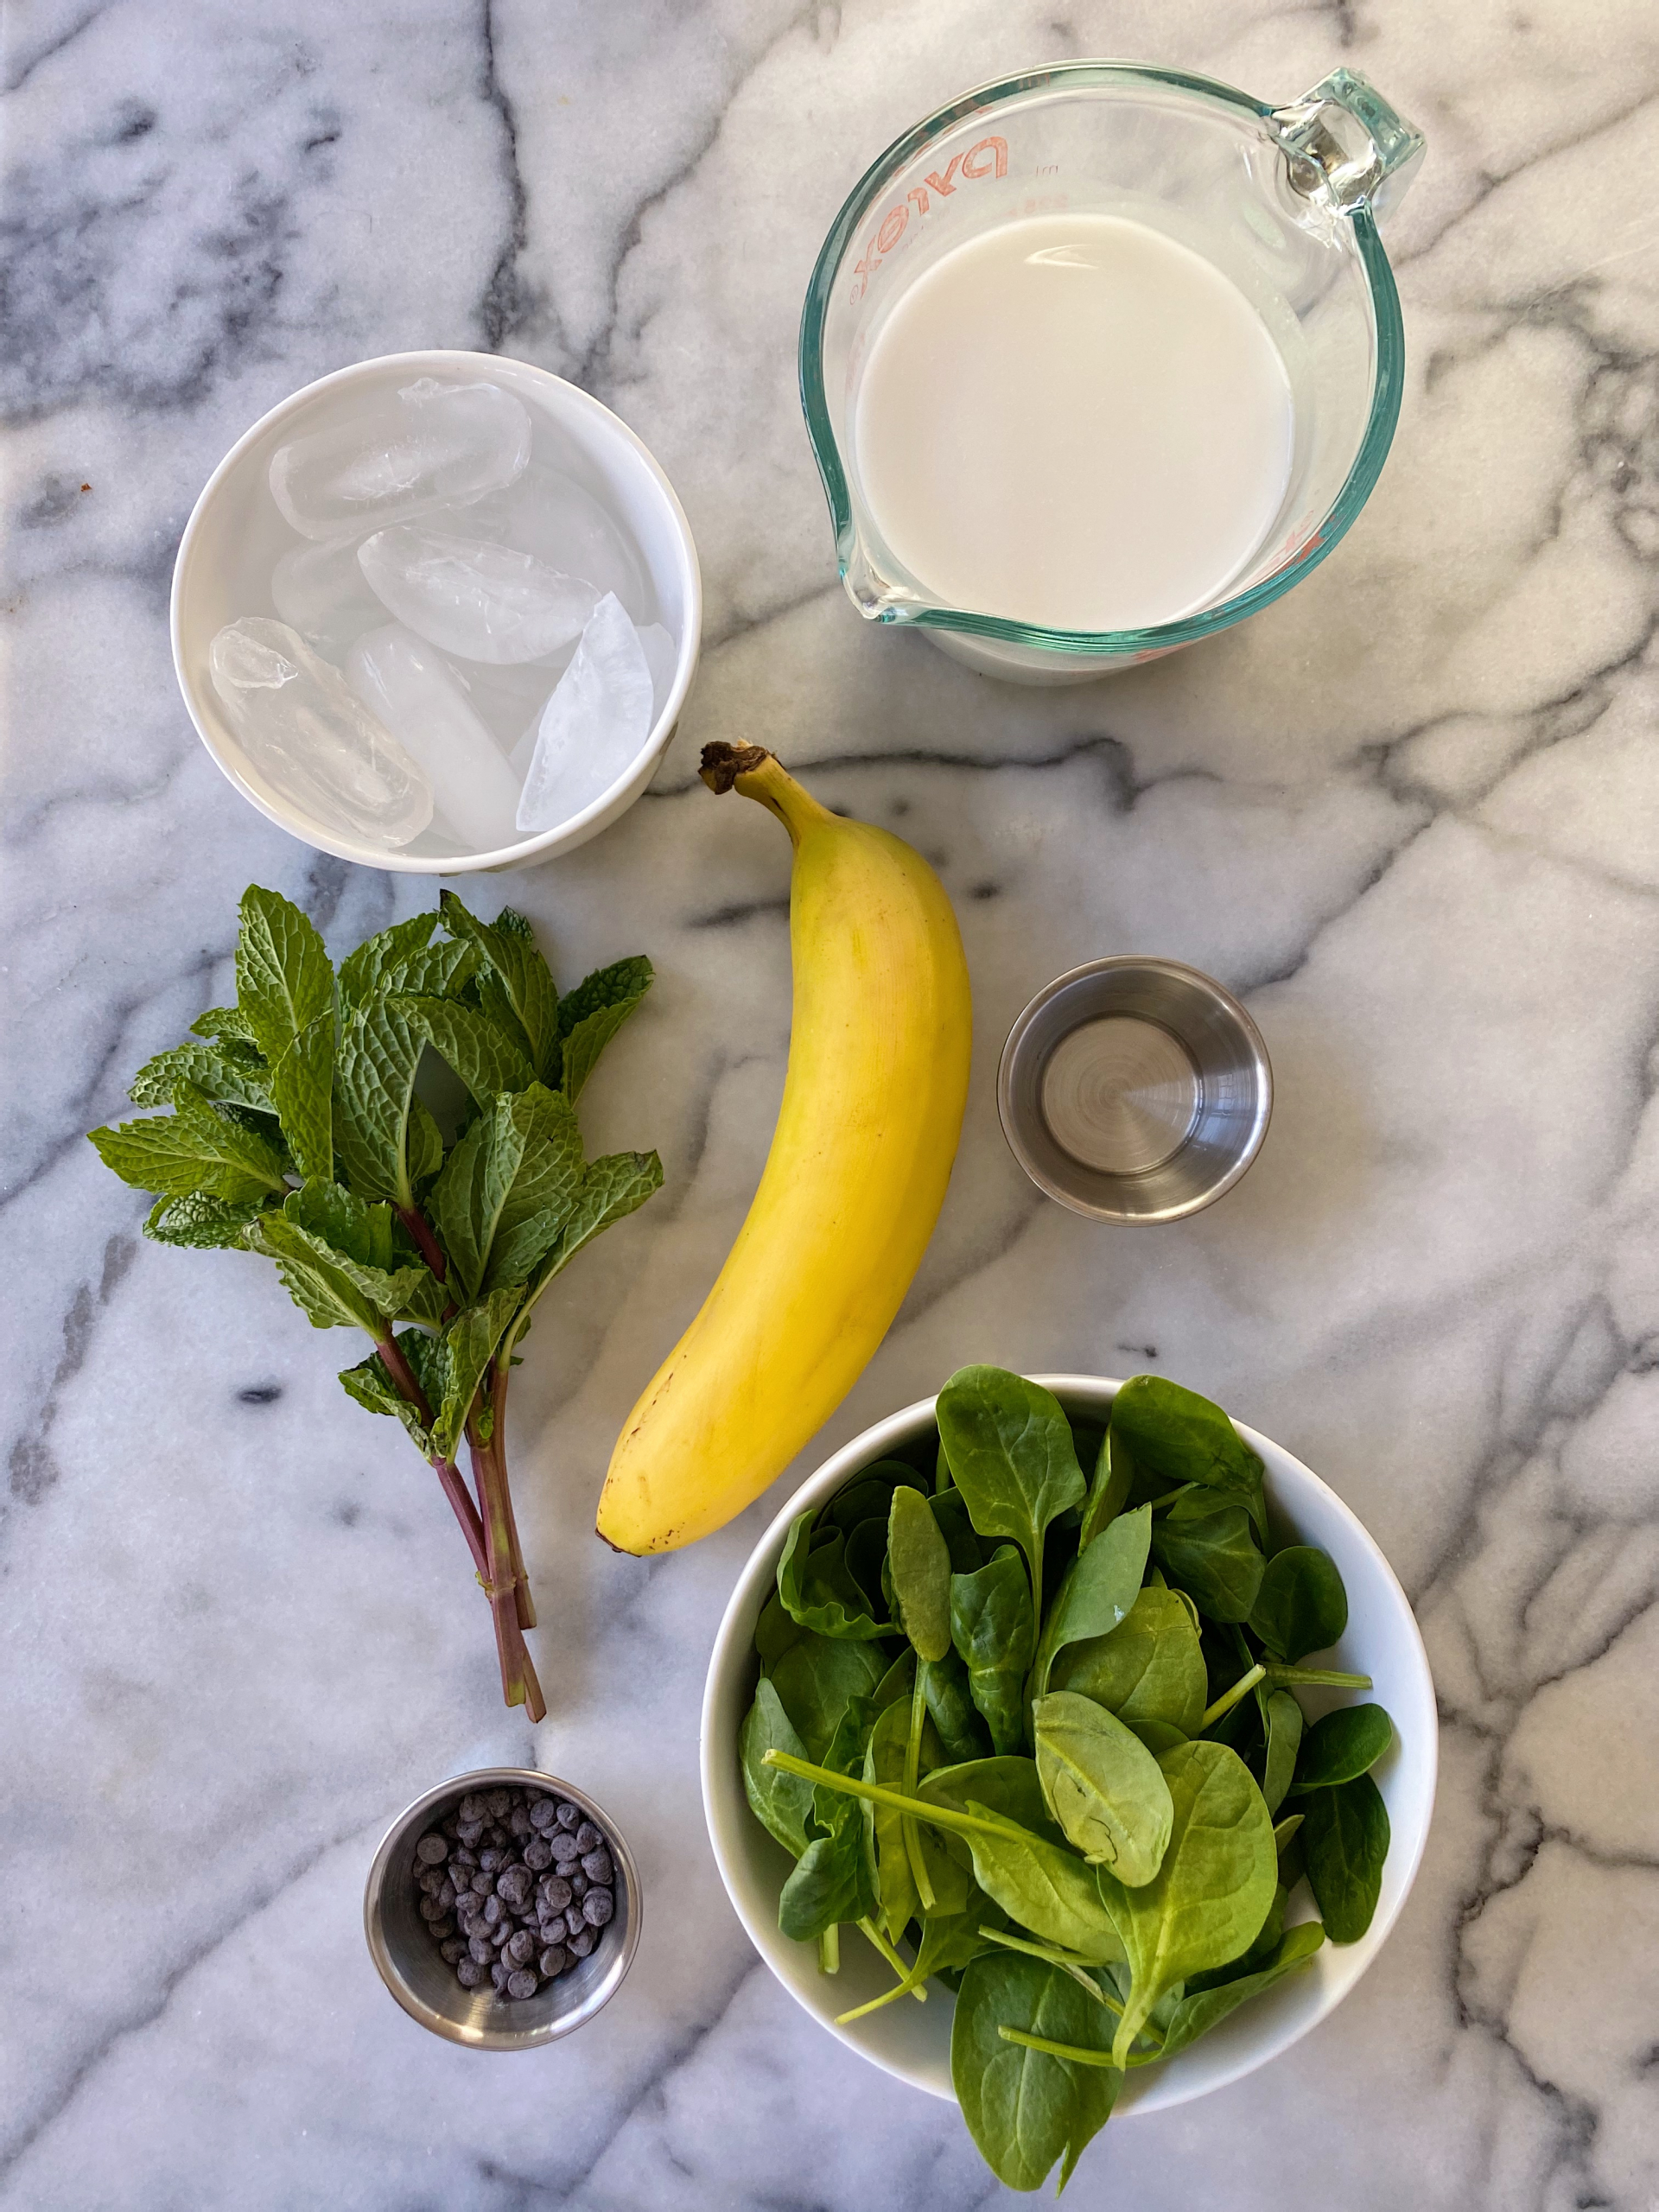 mint chocolate chip smoothe simple recipe gluten-free www.healthygffamily.com